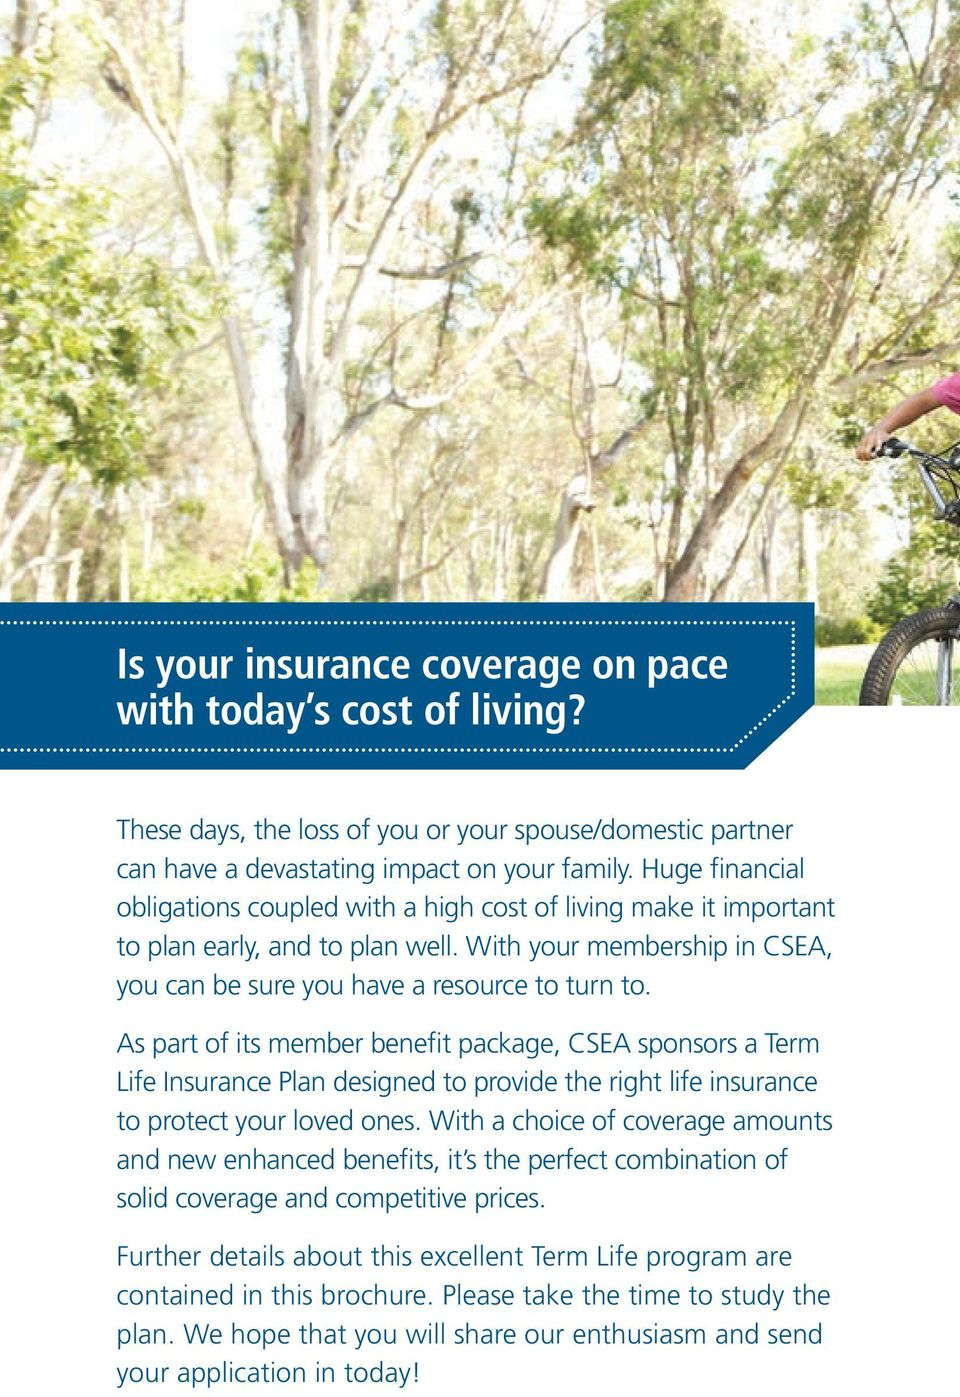 As part of its member benefit package, CSEA sponsors a Term Life Insurance Plan designed to provide the right life insurance to protect your loved ones.